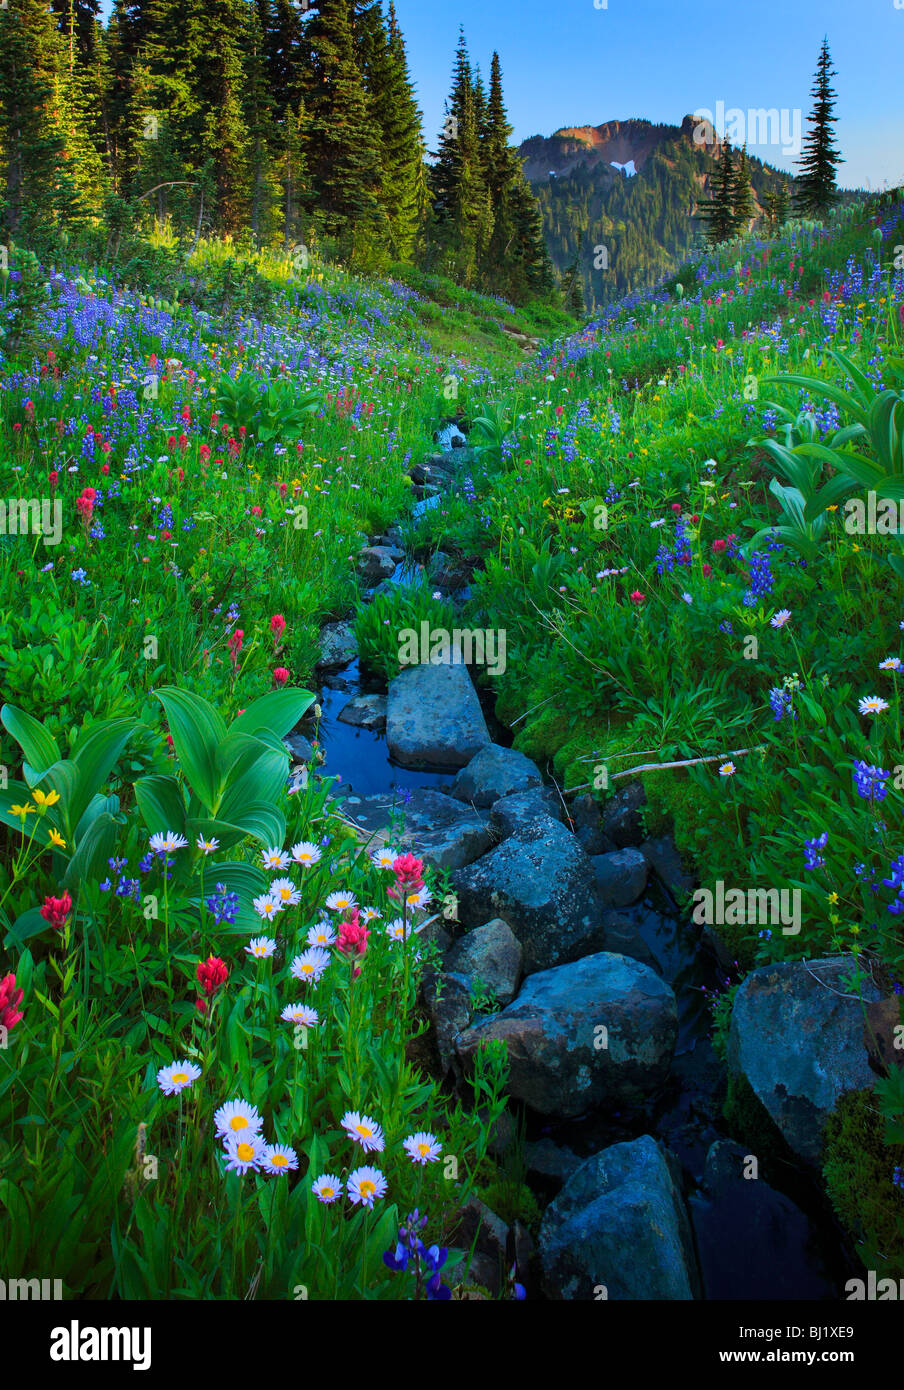 Abundance of wildflowers along creek in Mount Rainier National Park in Washington state, USA - Stock Image